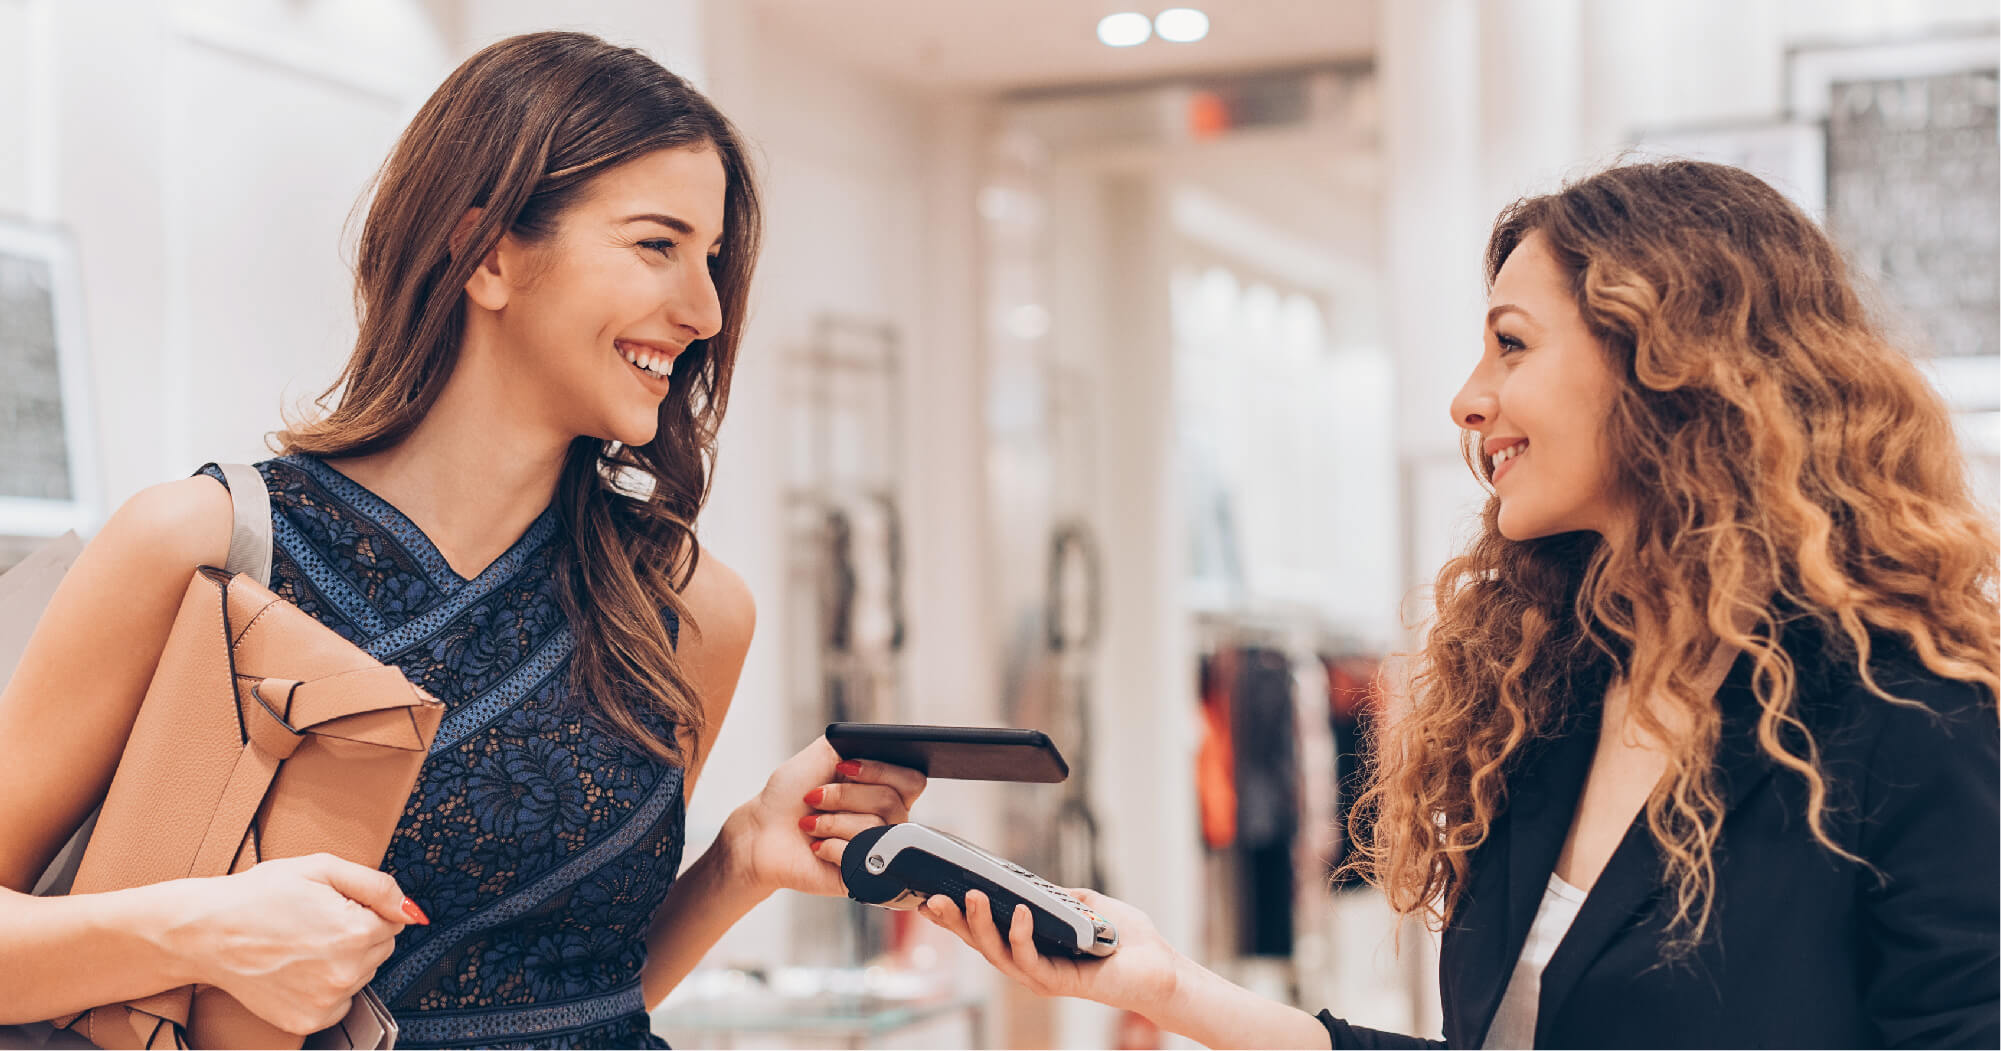 Happy people using mobile wallet payment - SingSaver